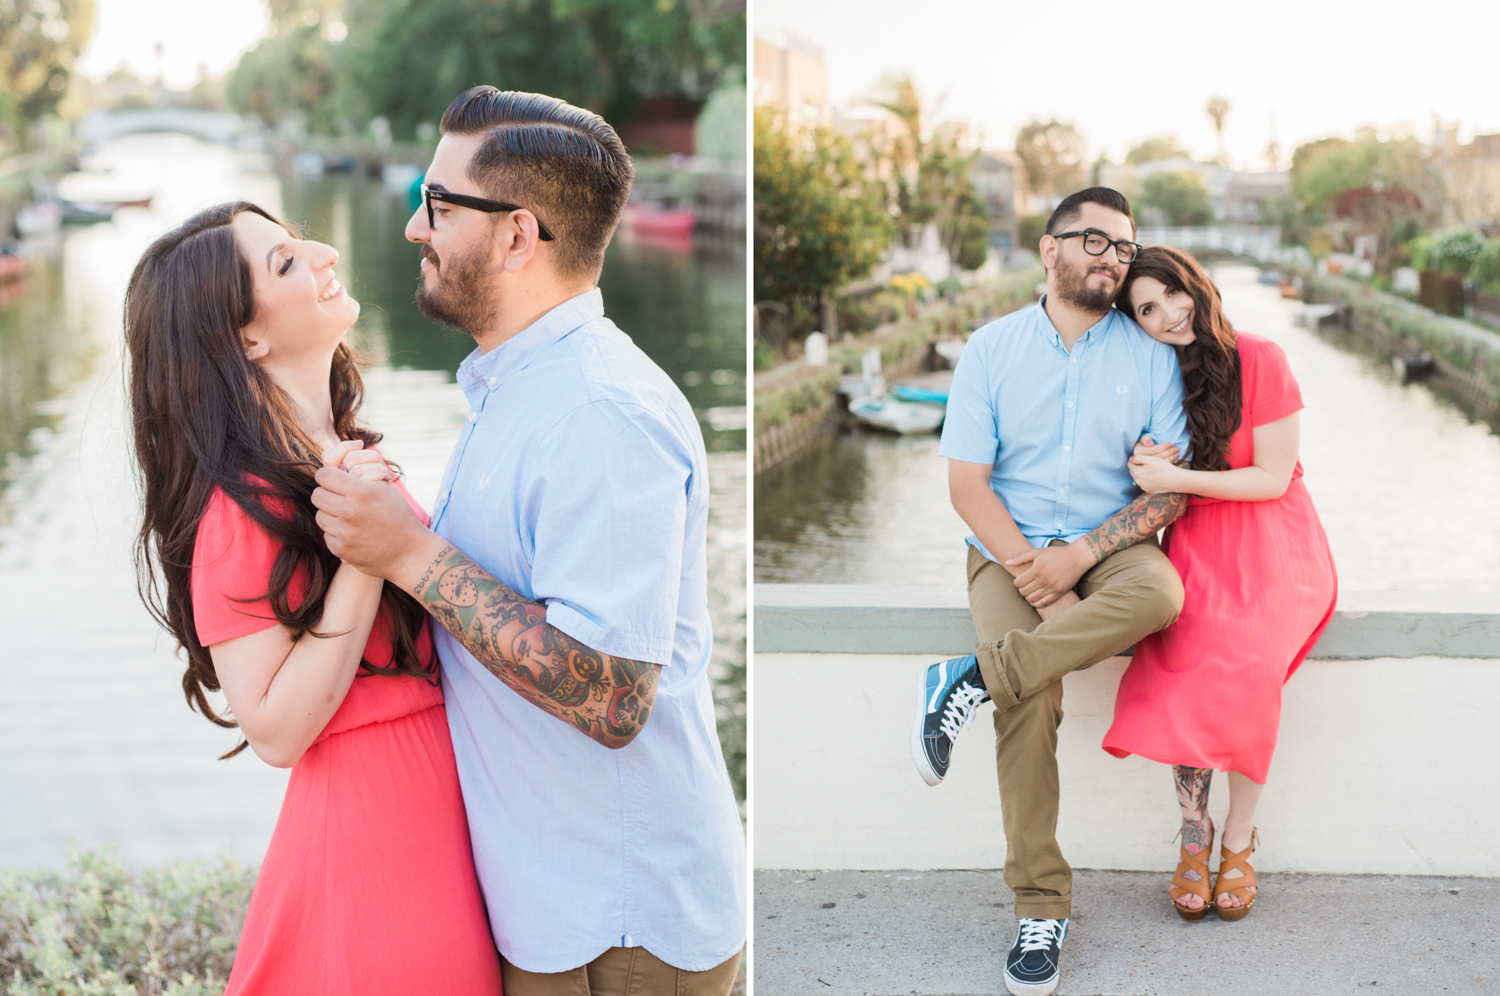 lauren&anthony-venice-canals-engagement-session-photography-los-angeles-wedding-photographer-venice-3.jpg